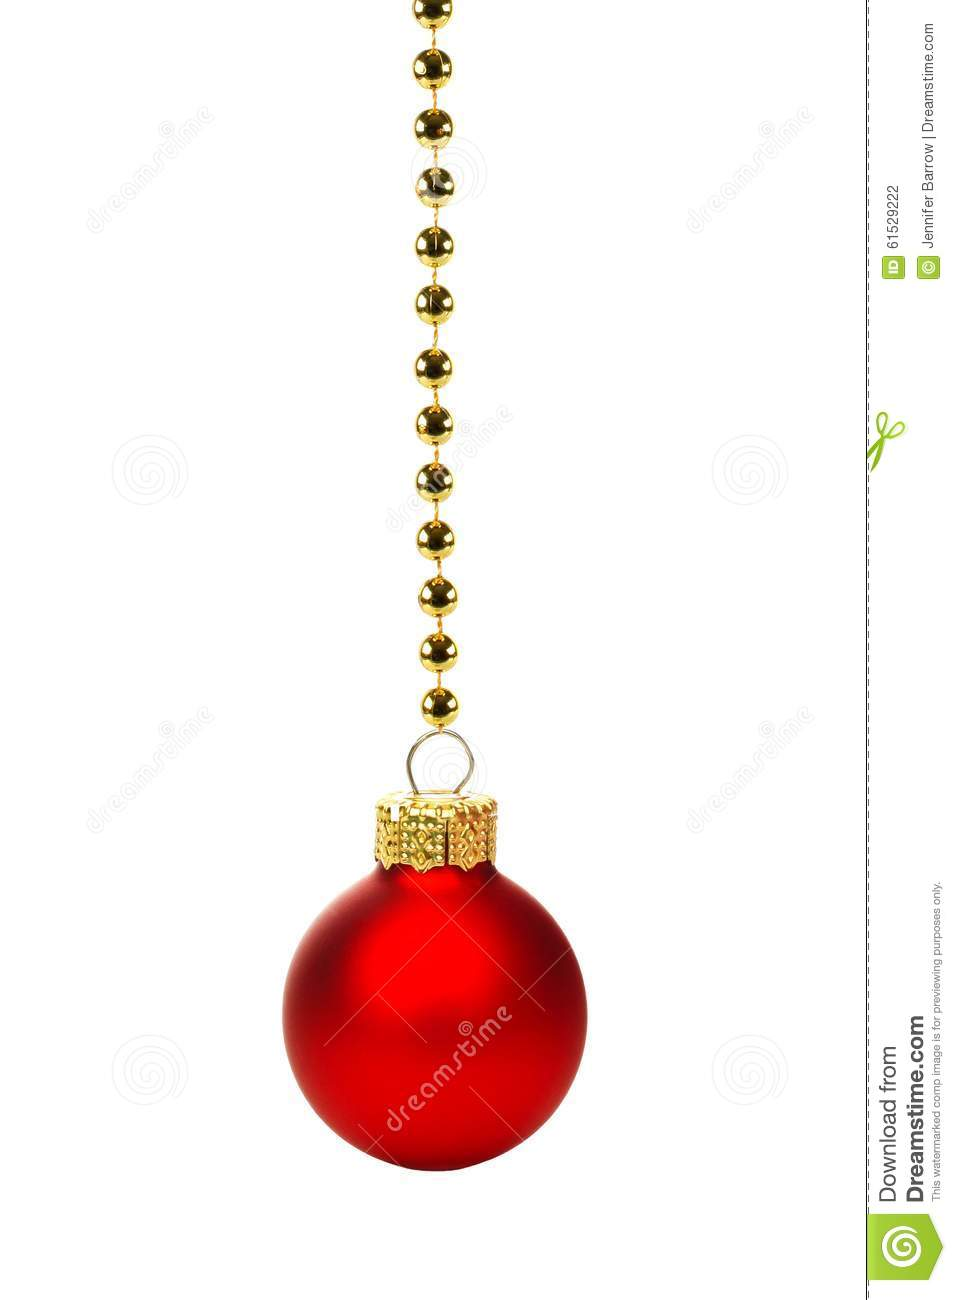 Red christmas ornament on string of gold beads over white stock photo image 61529222 - String ornaments christmas ...